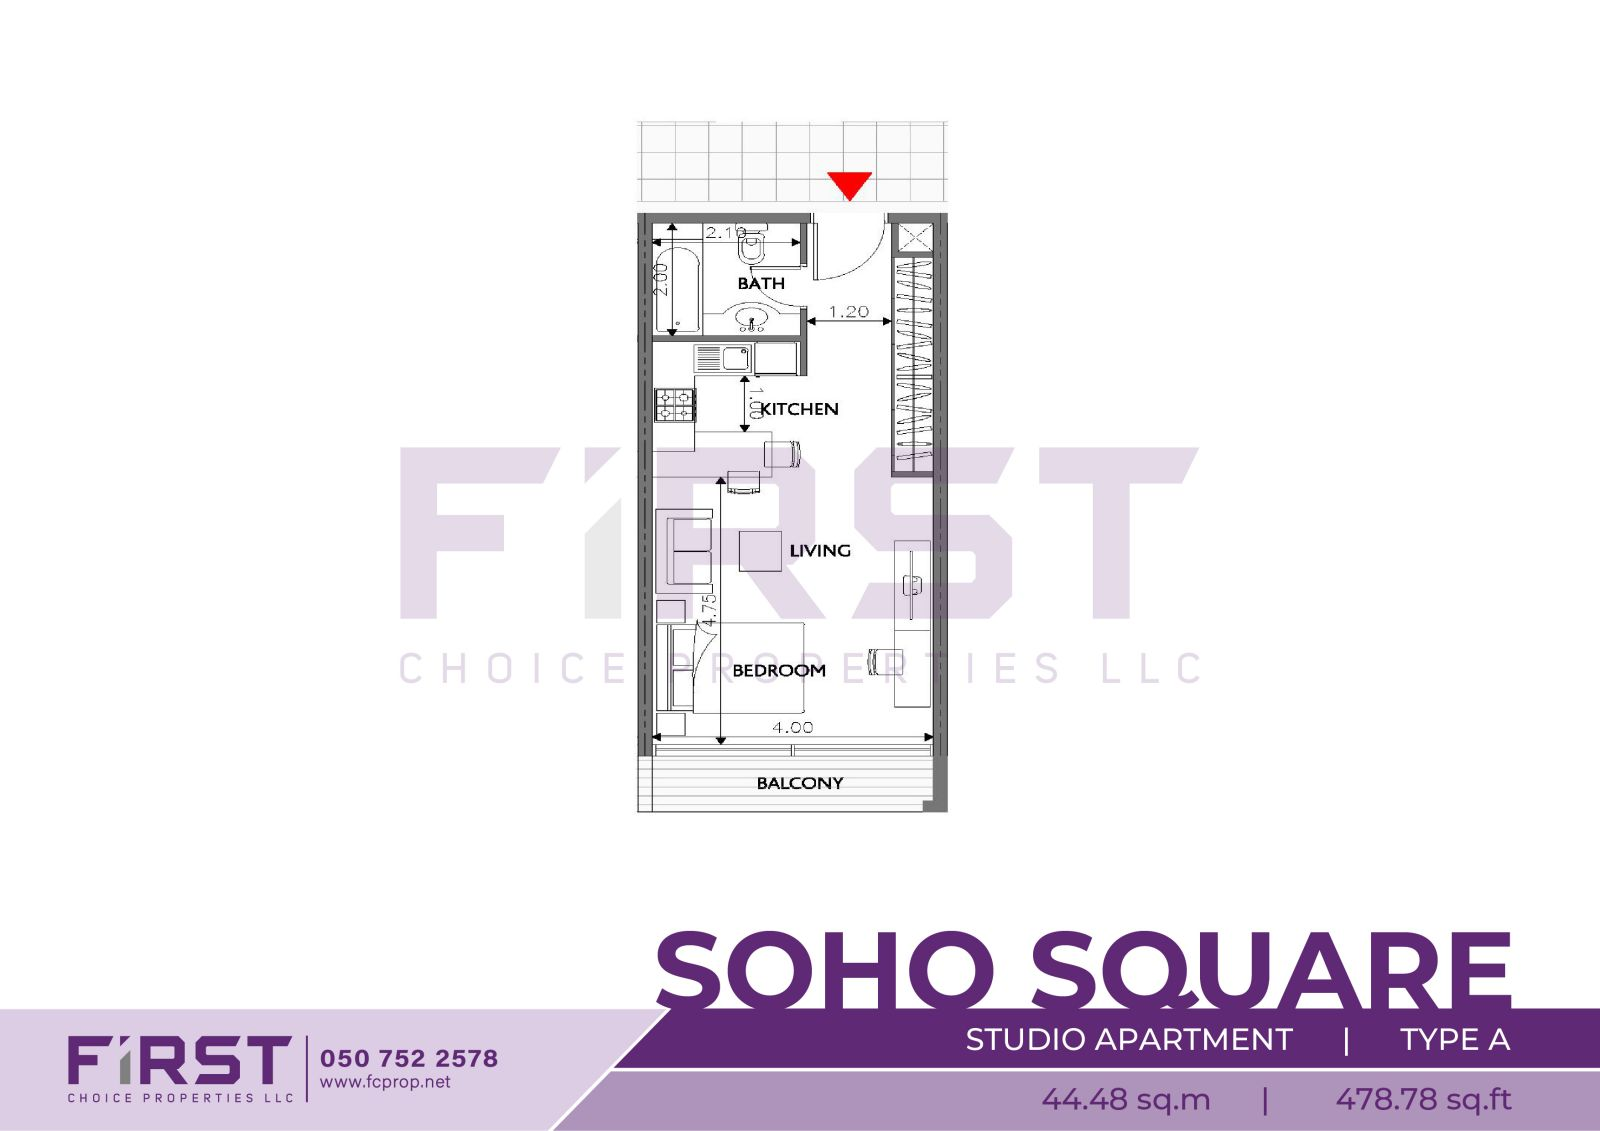 Floor Plan of Studio Apartment Type A in Soho Square Saadiyat Island Abu Dhabi UAE 44.48 sq.m 478.78 sq.ft.jpg